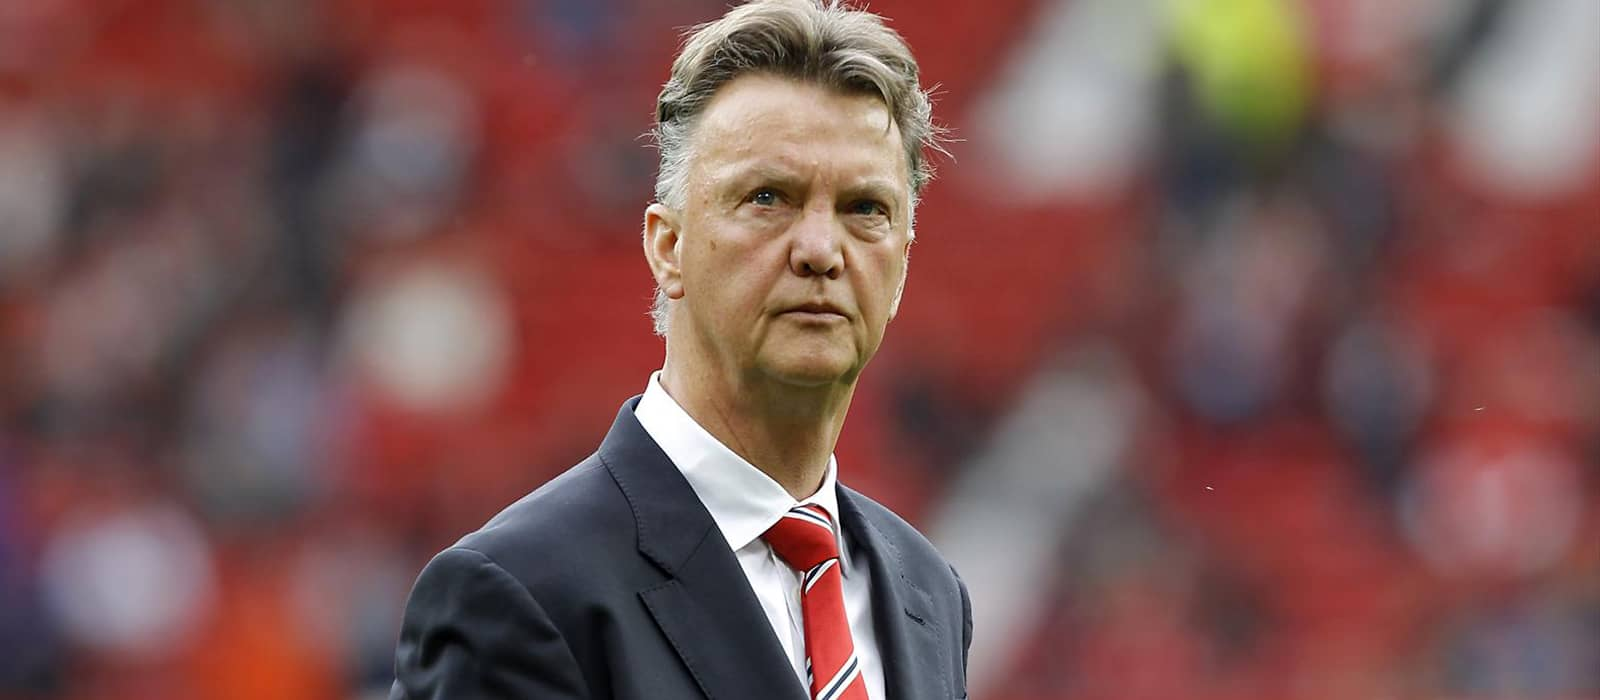 Van Gaal: Record against top teams will give Man United confidence against Spurs